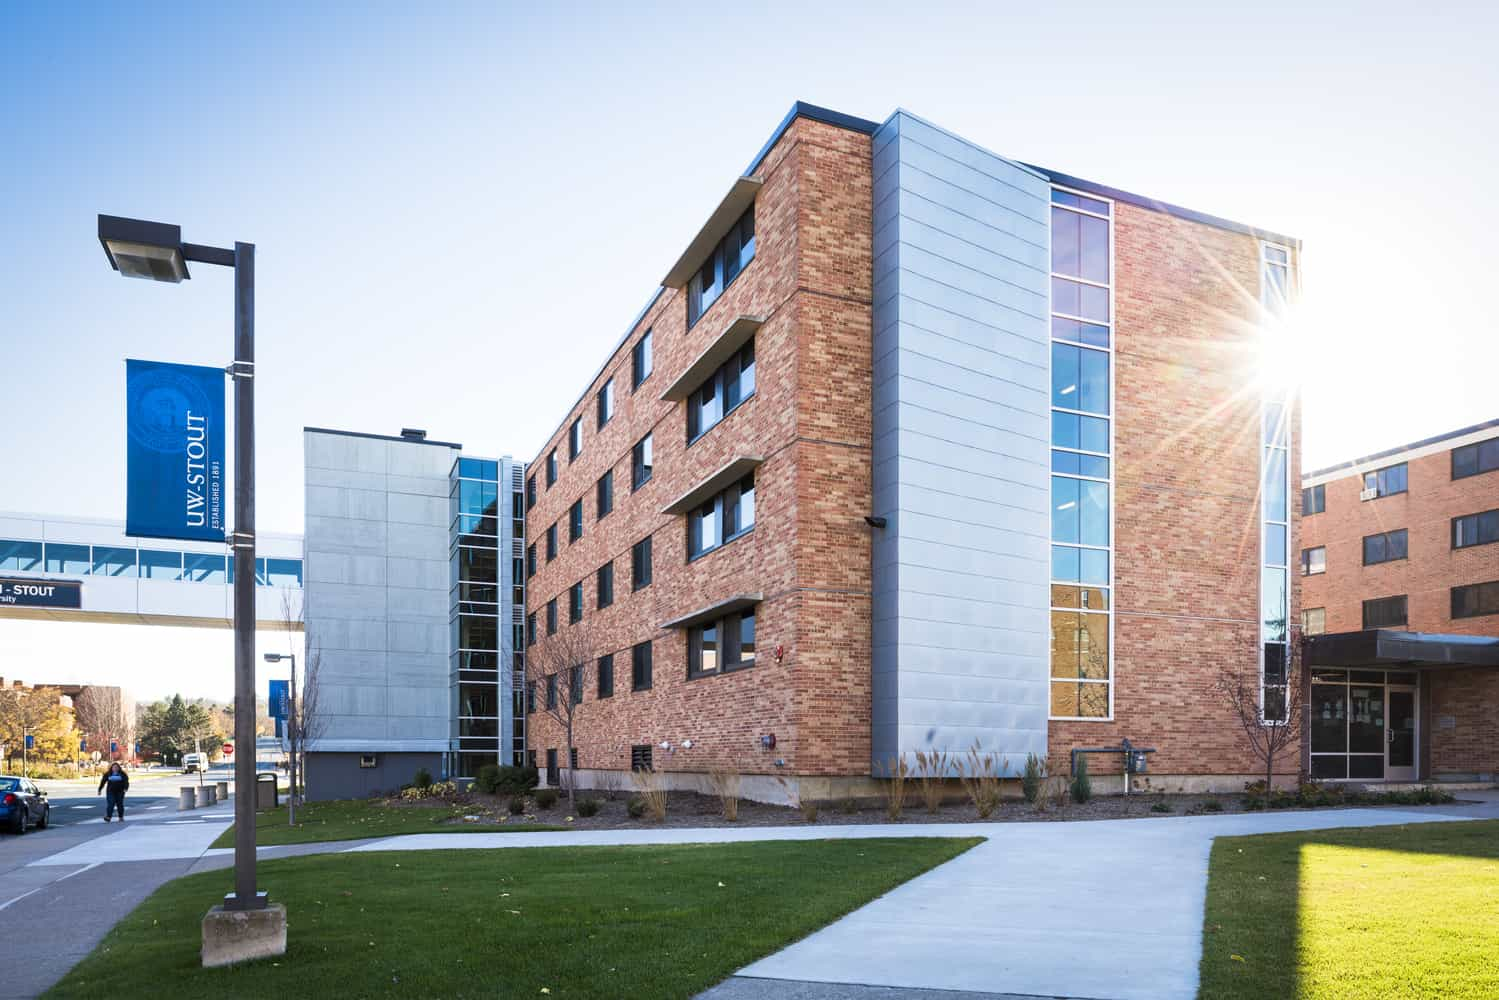 University of Wisconsin-Stout McCalmont Residence Hall